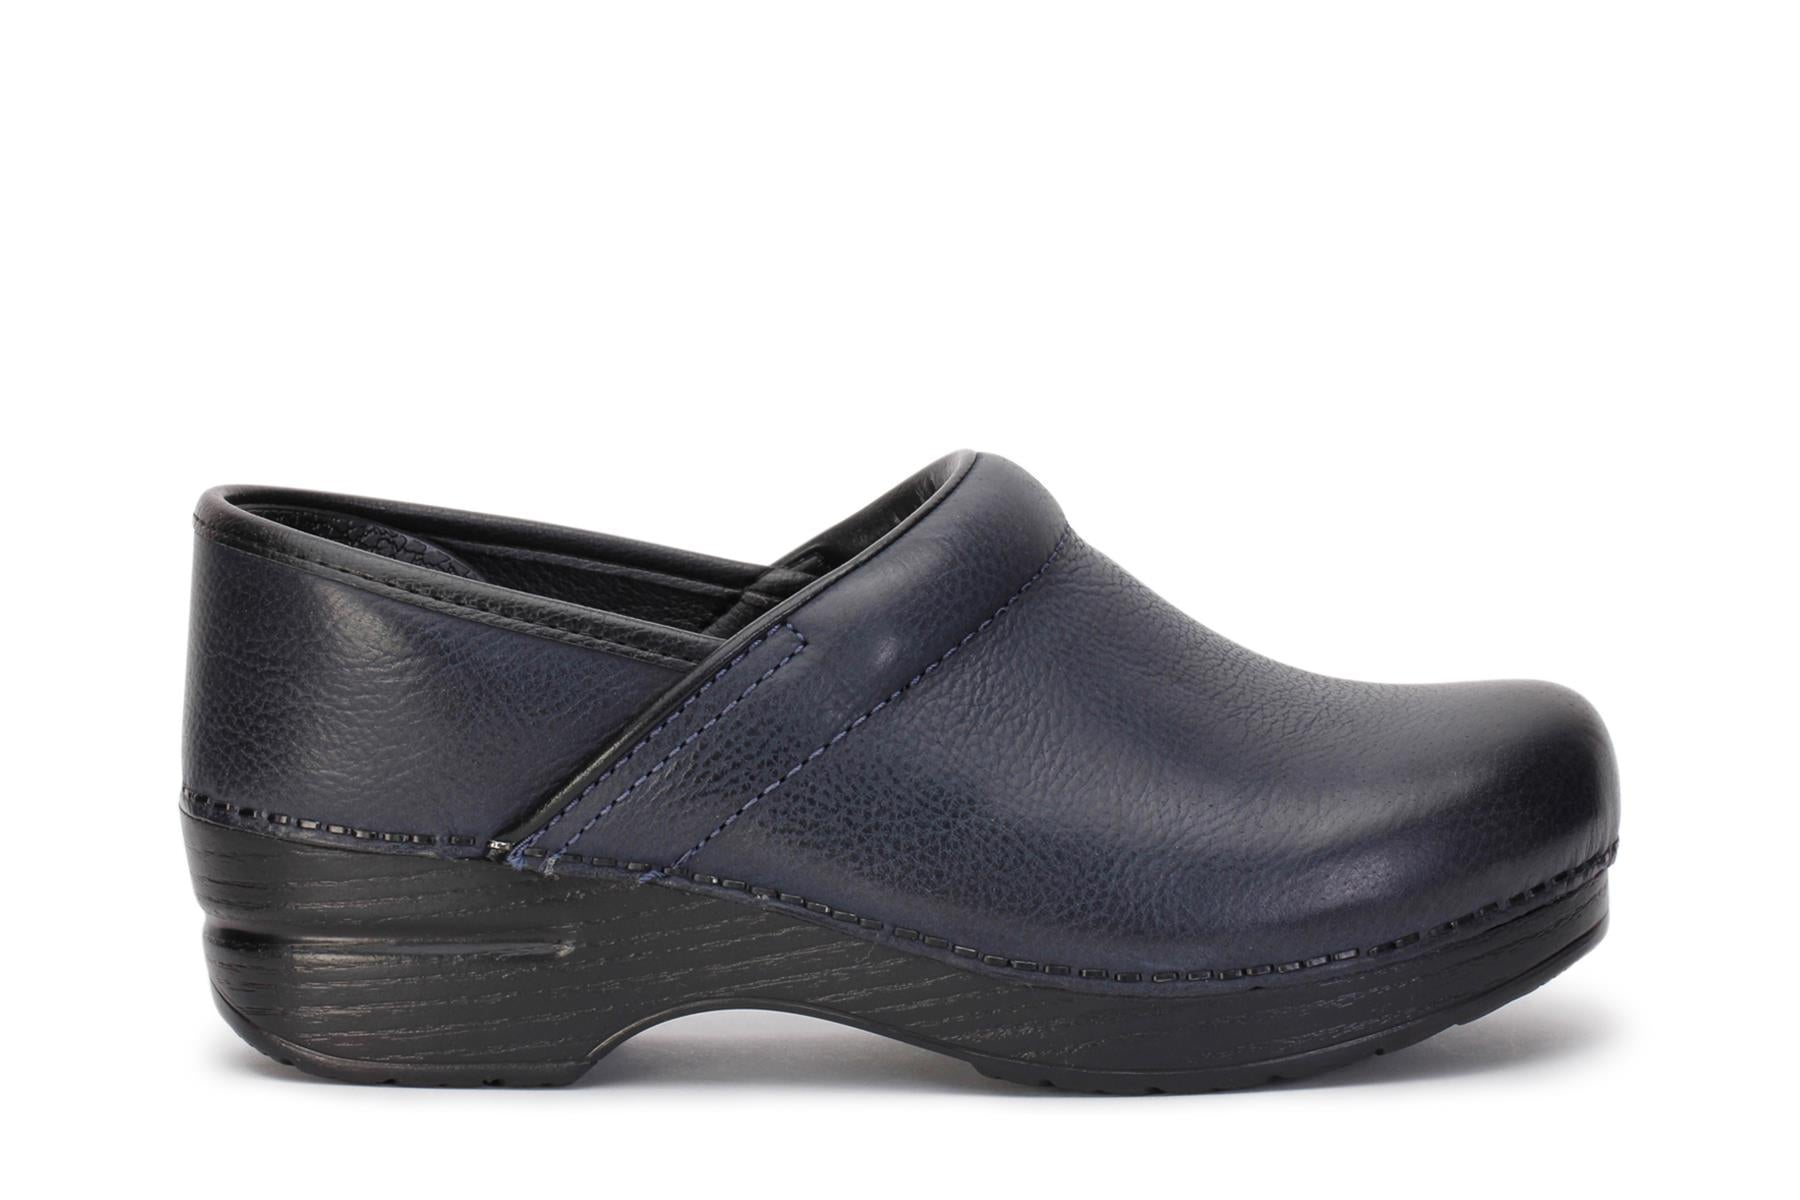 dansko-womens-clog-shoes-professional-navy-burnished-nubuck-106750202-main